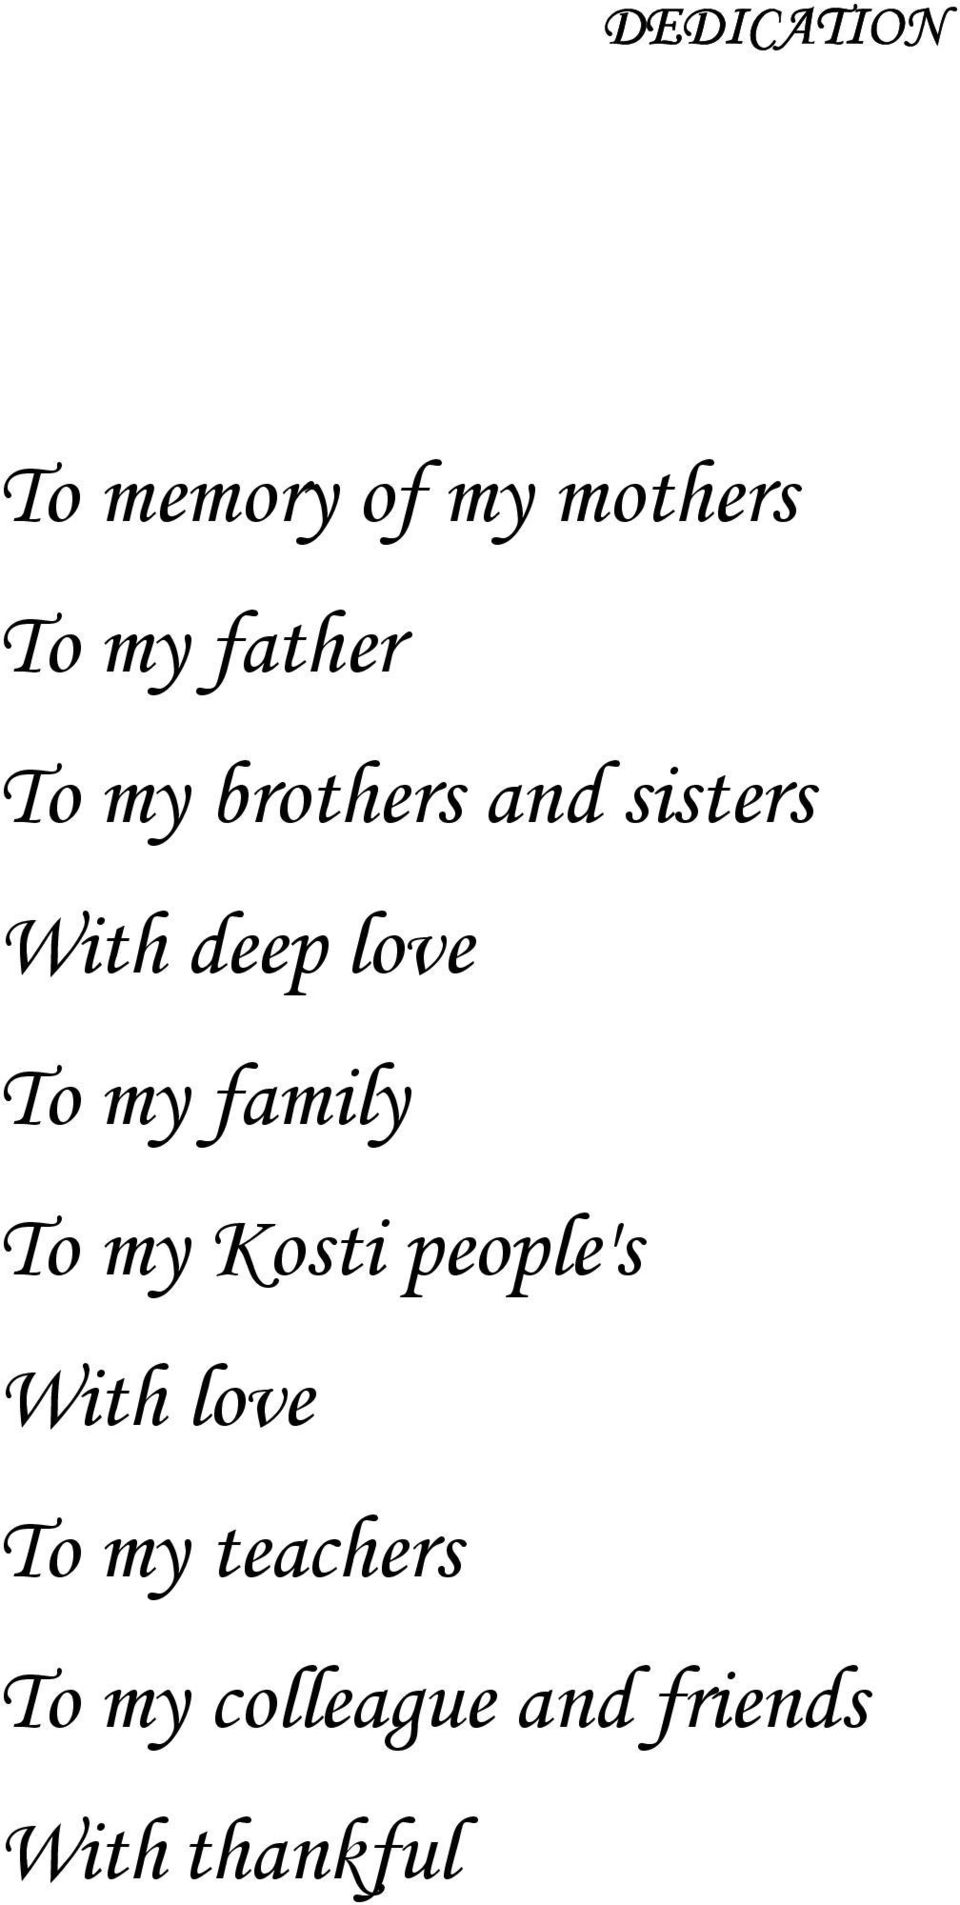 family To my Kosti people's With love To my